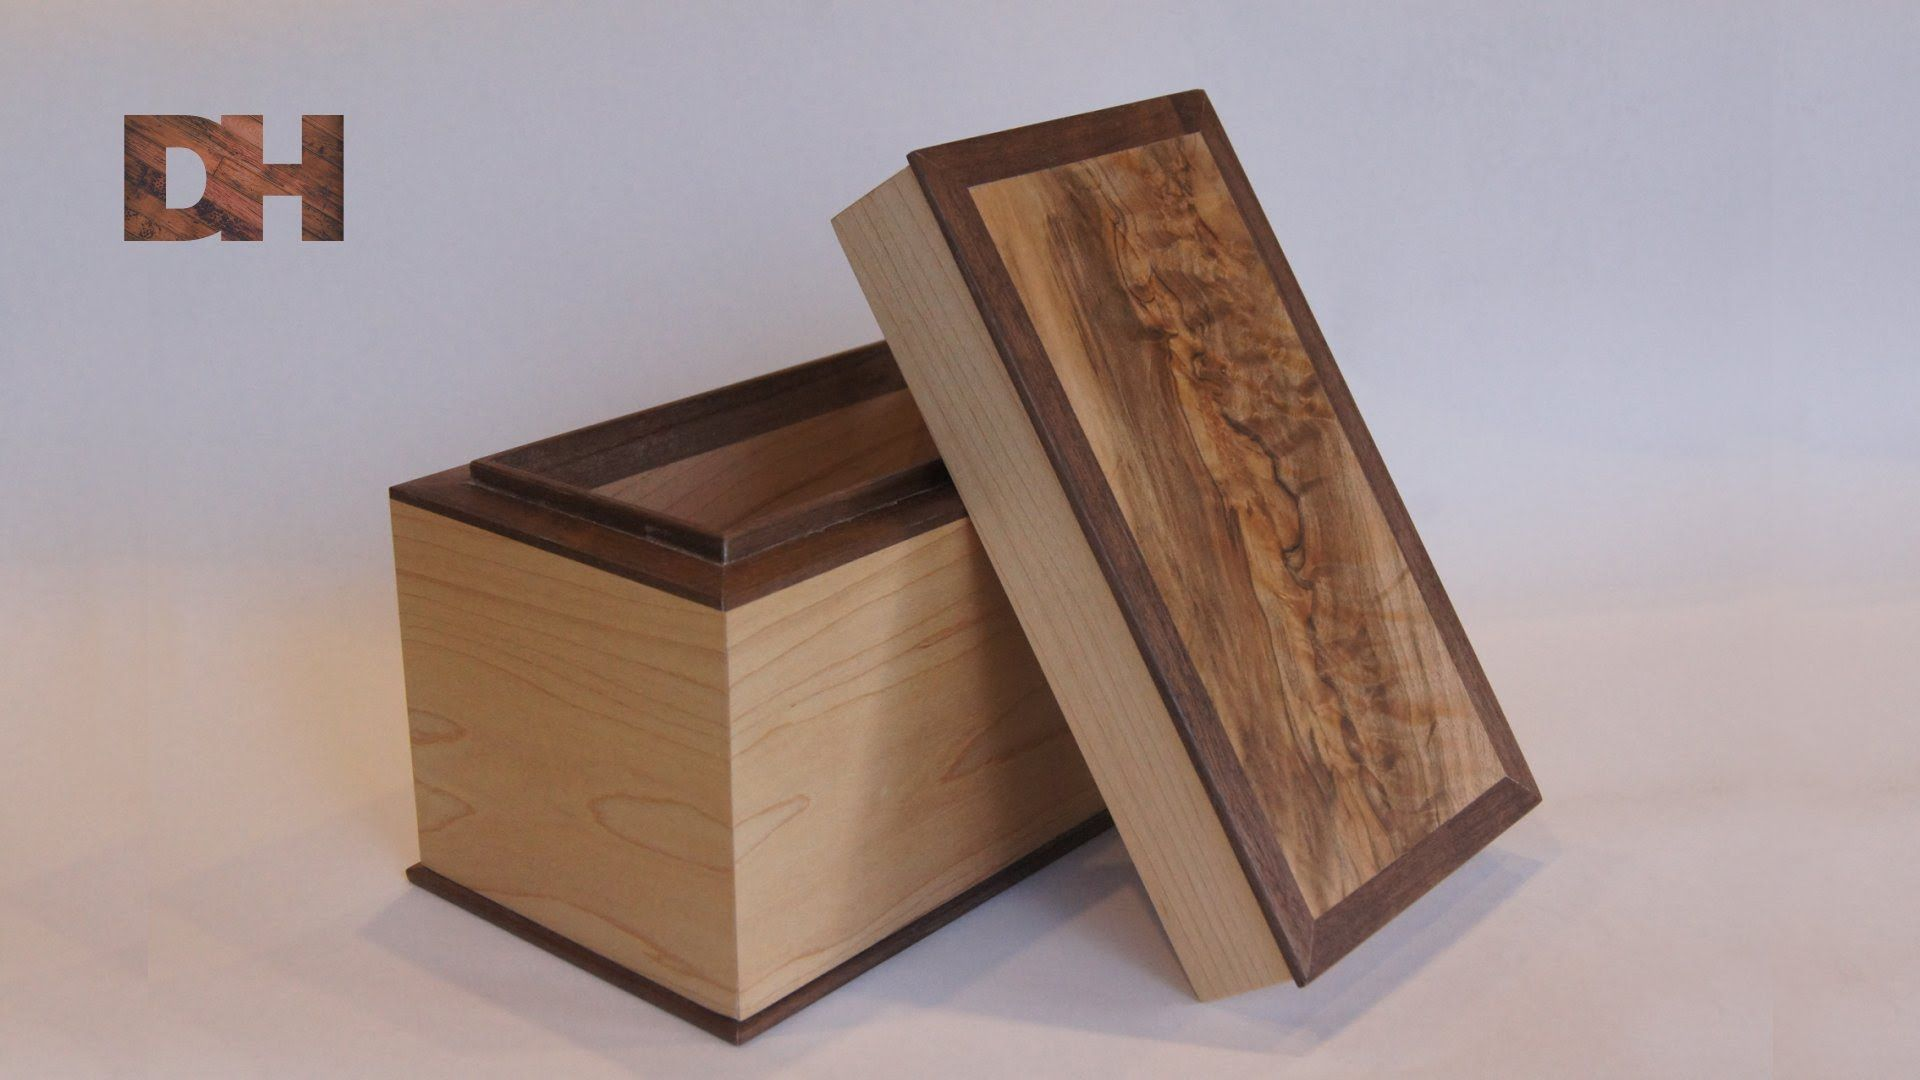 Wooden Decorative Boxes Making A Gift Box From Reclaimed Wood  Wood Boxes  Pinterest